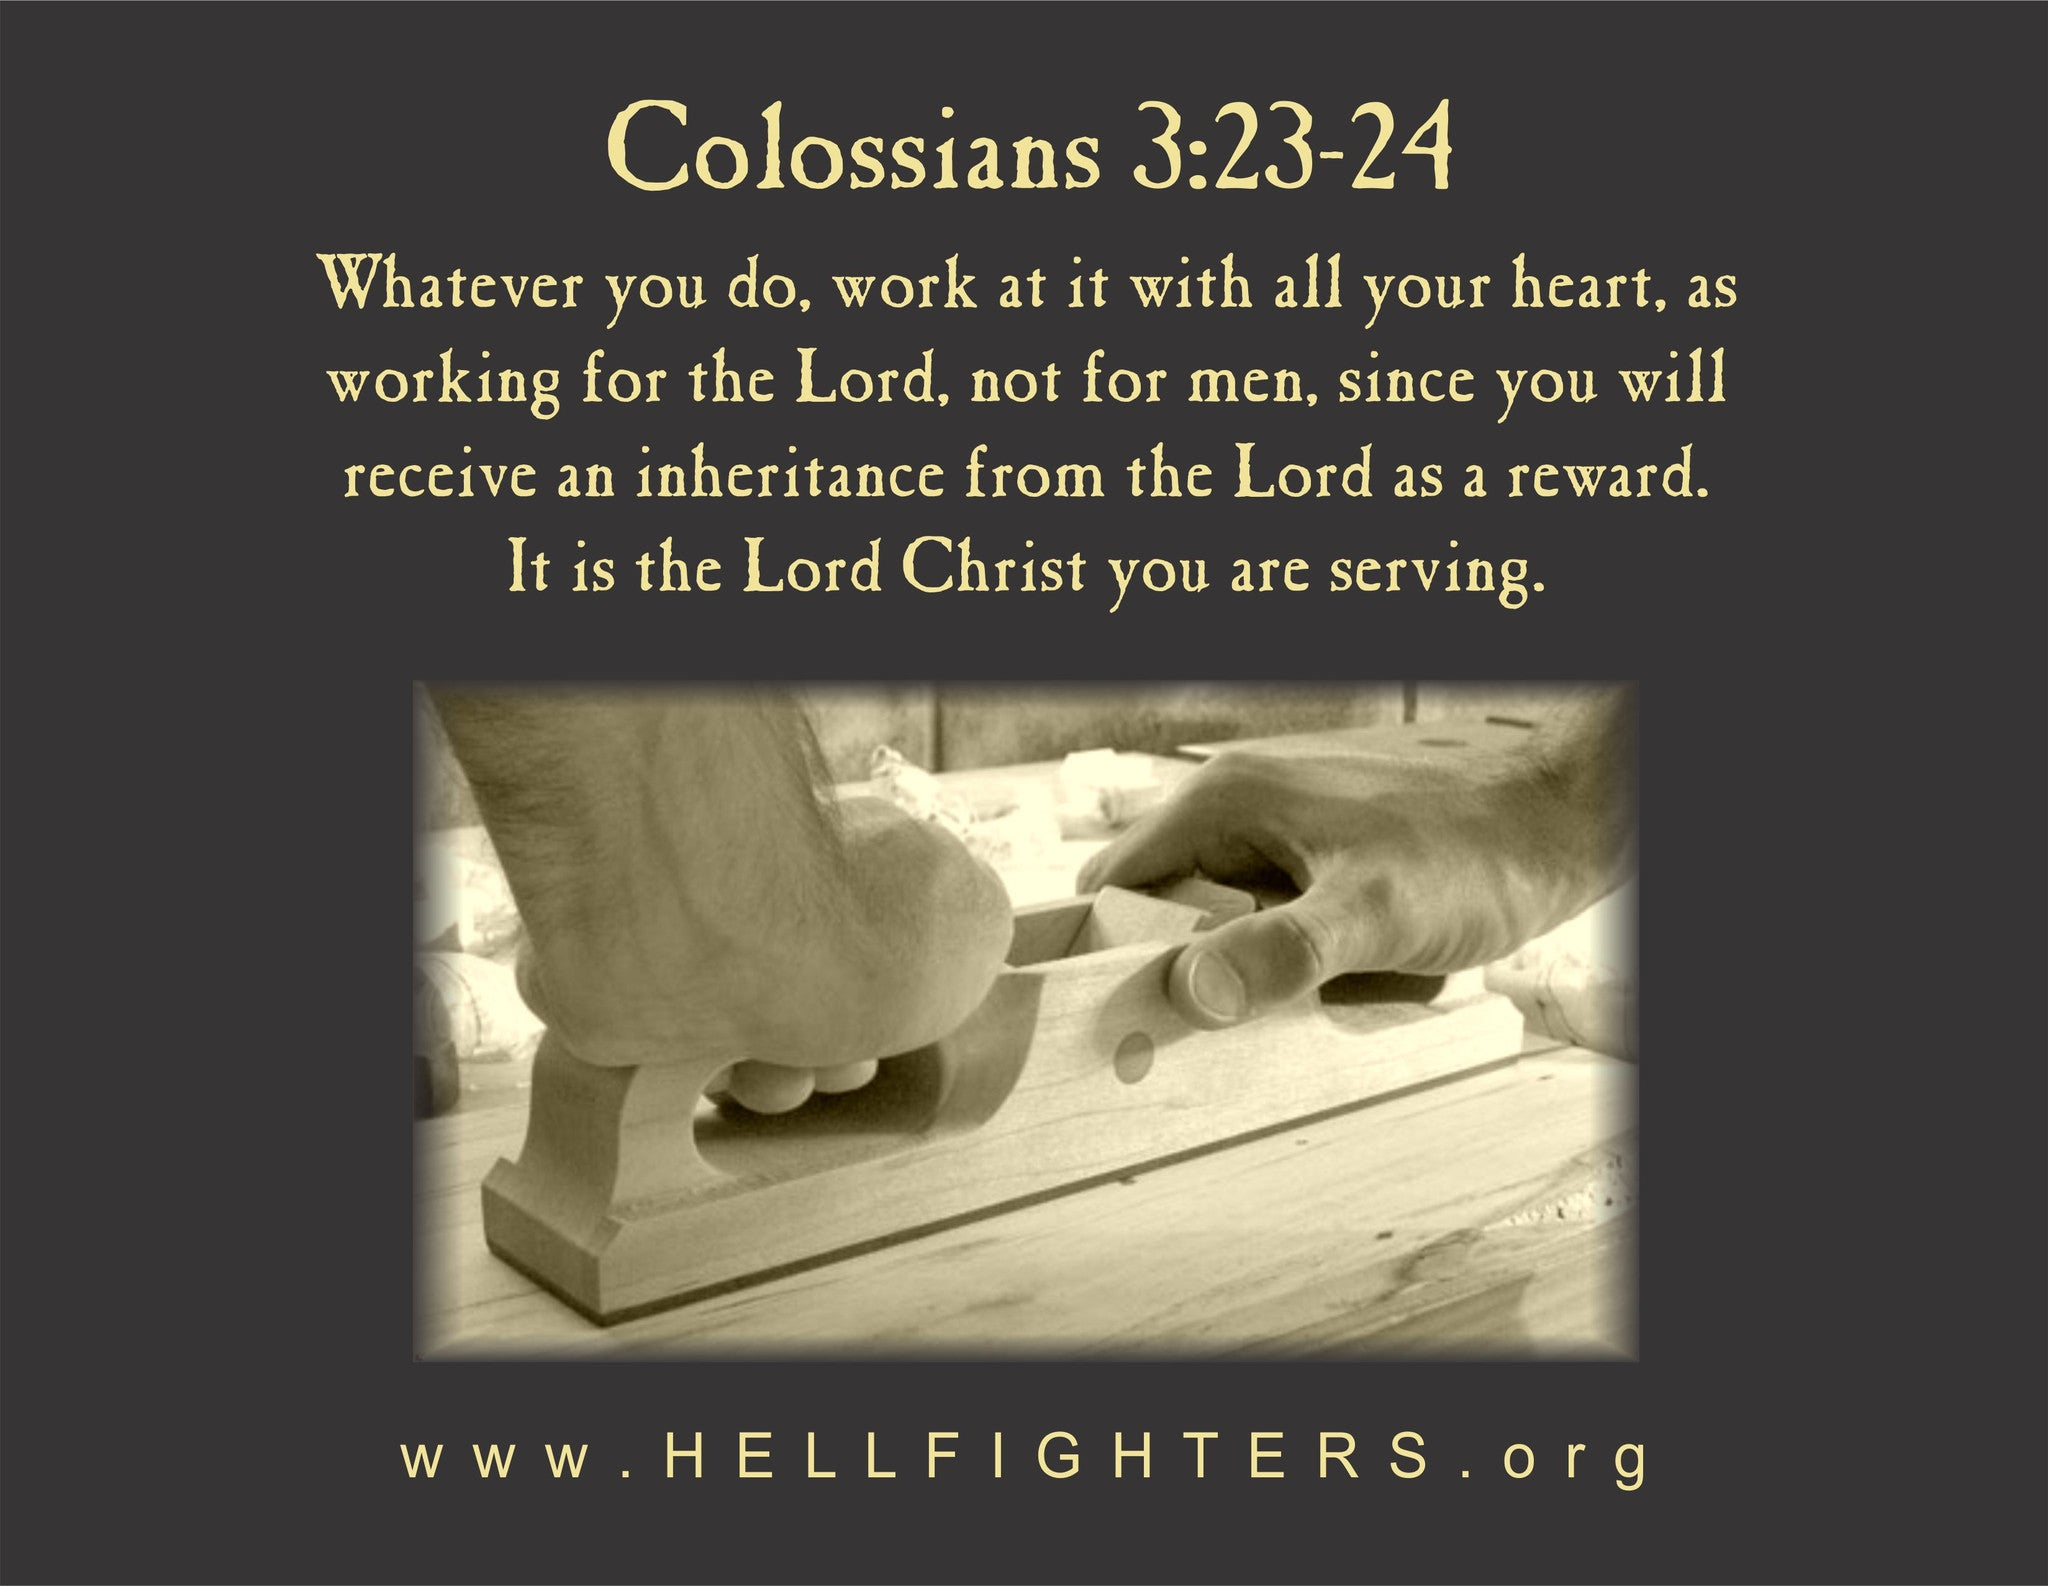 Poem/Pledge, Colossians 3:23-24